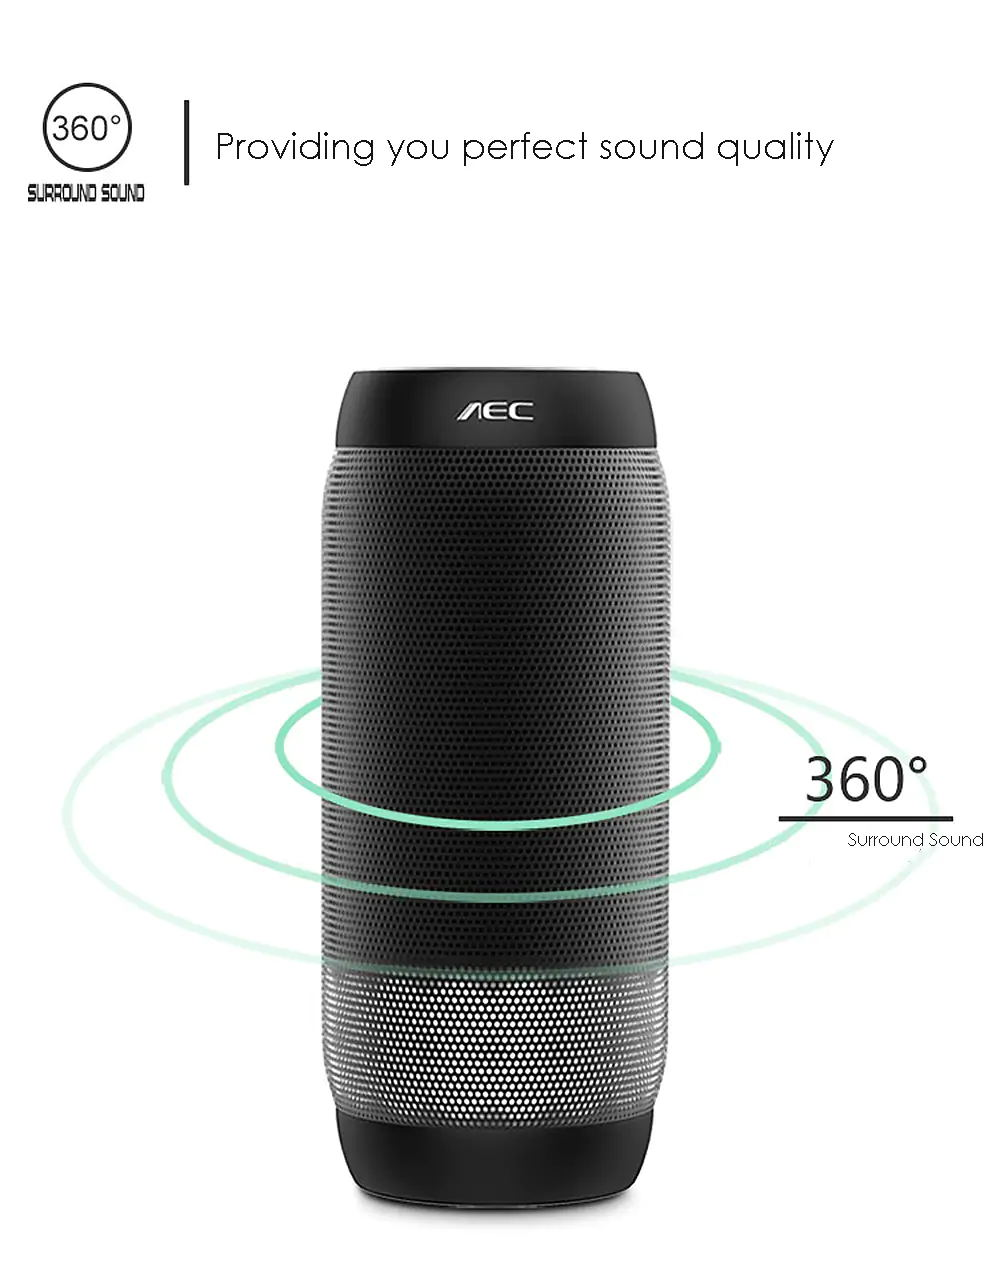 new aec bq-615 pro wireless speaker